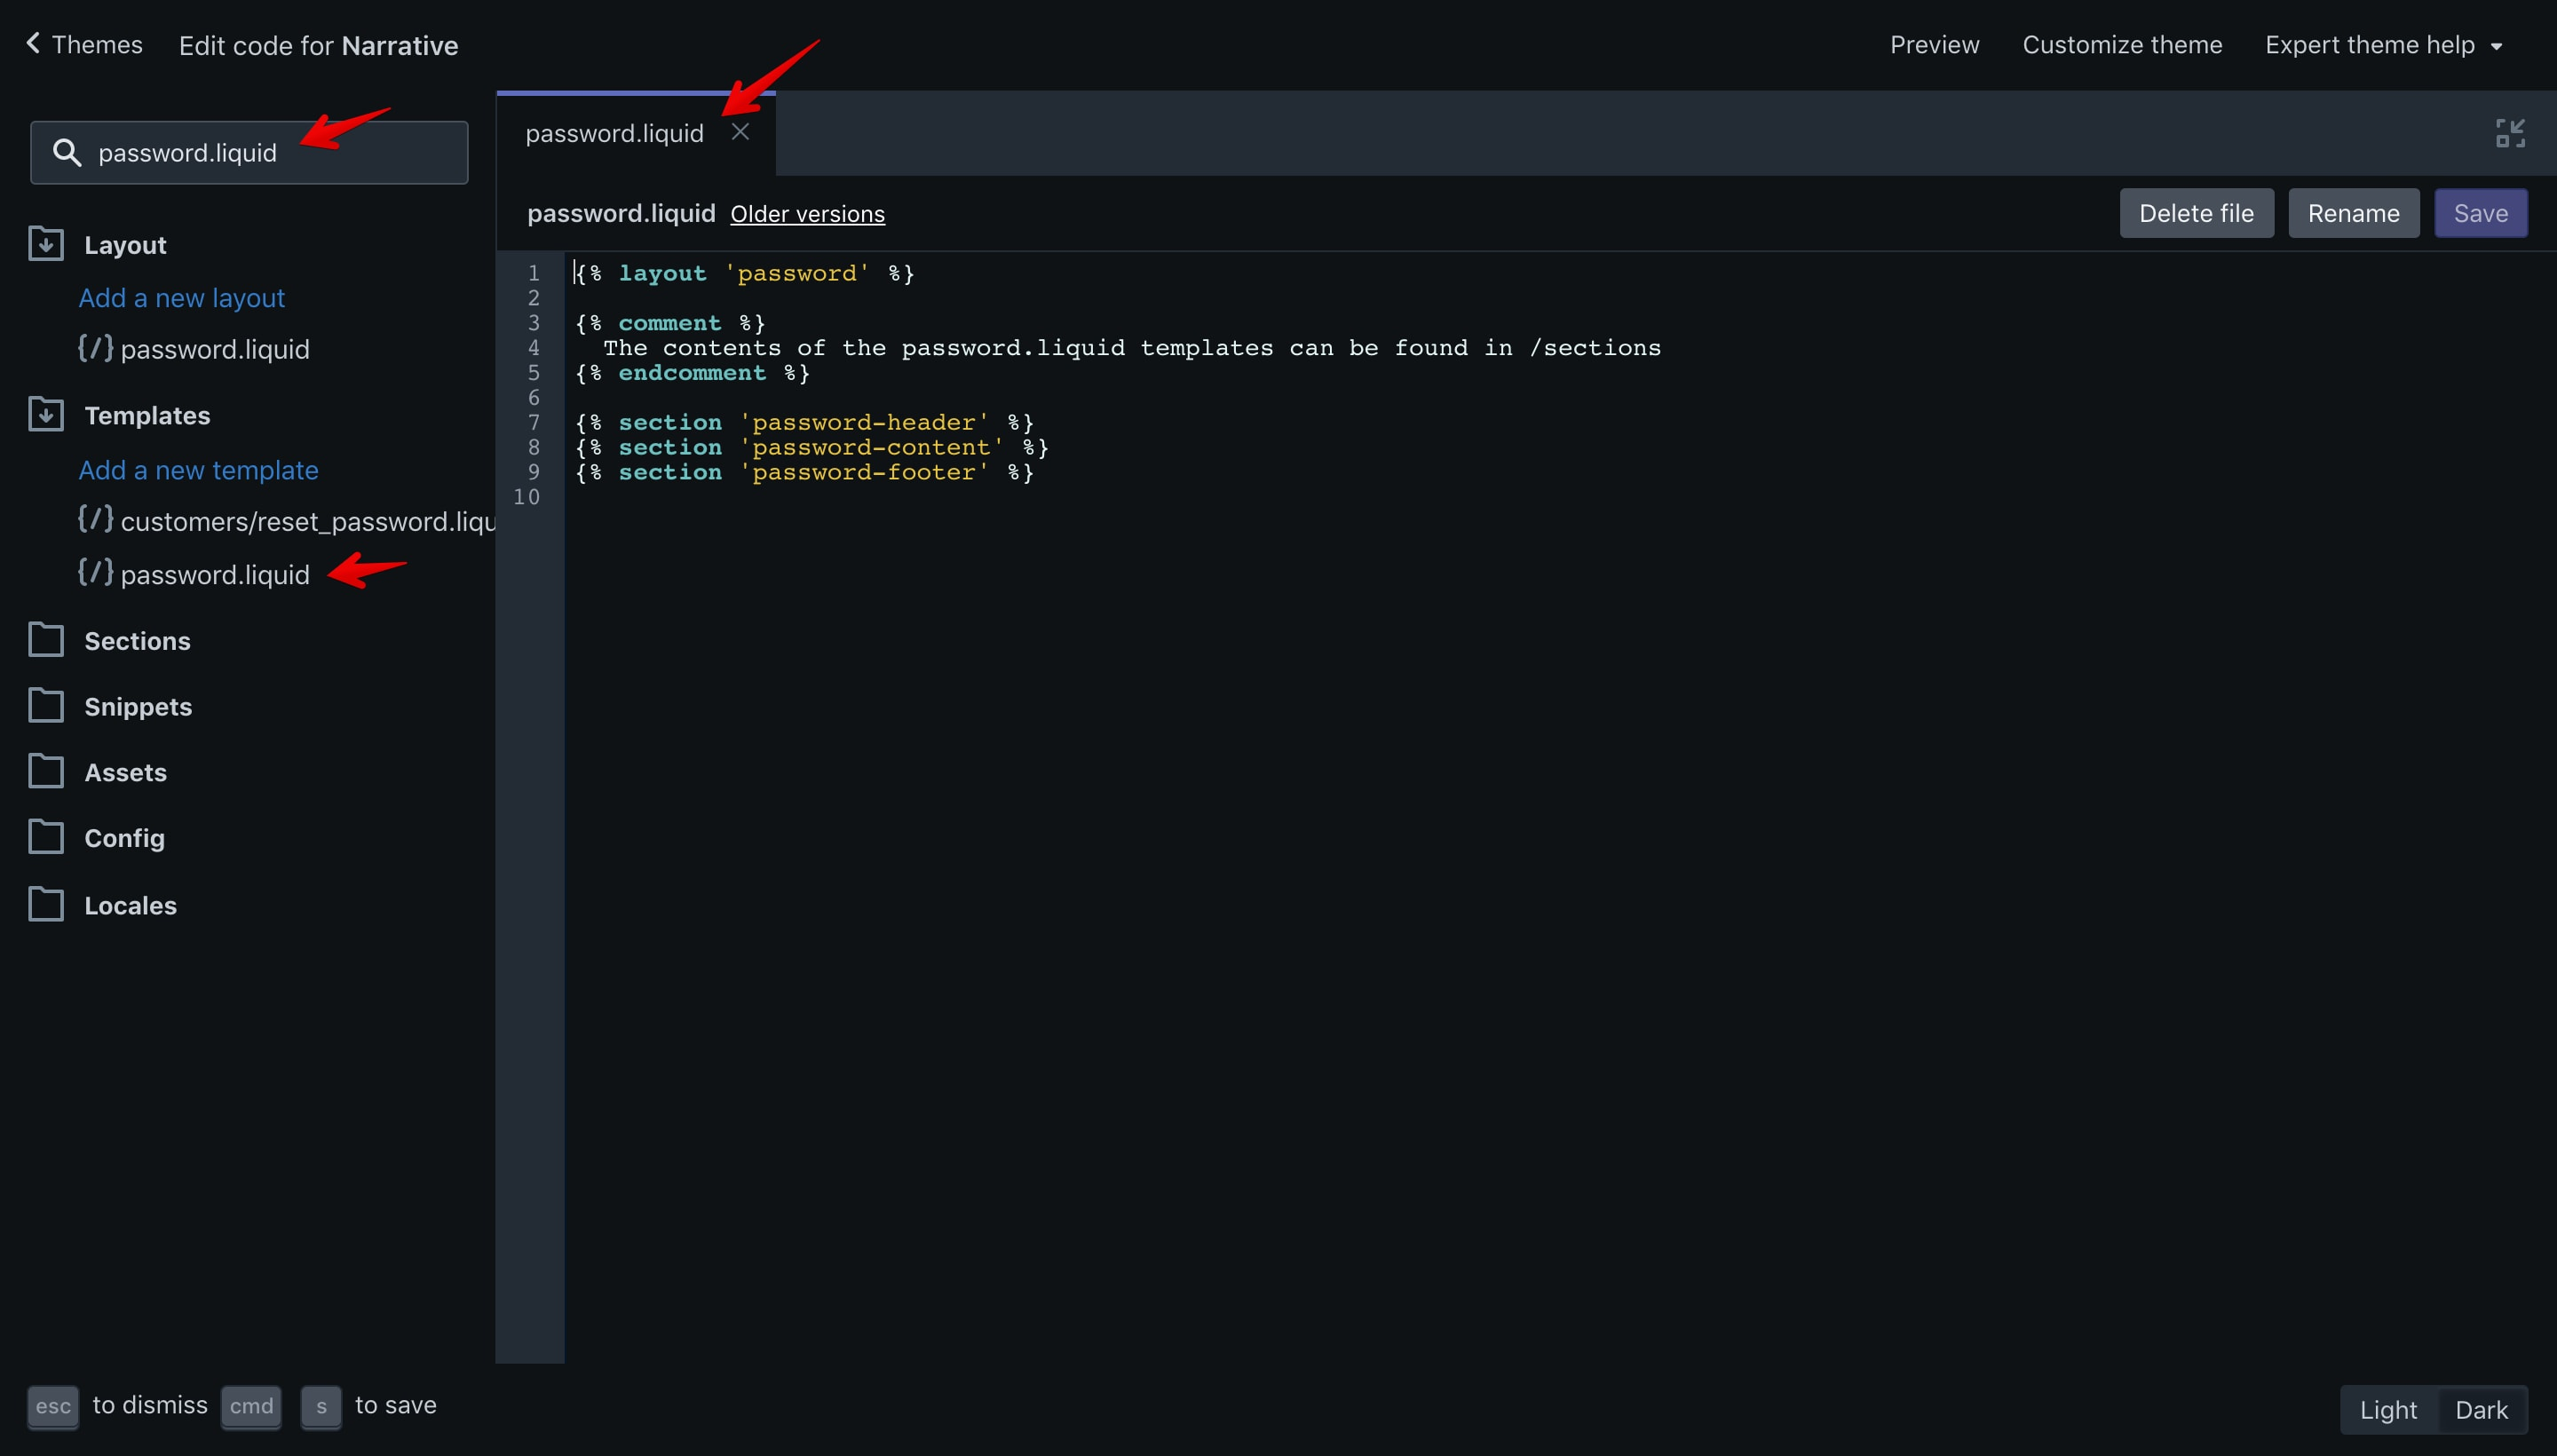 """Narrative theme """"password.liquid"""" file opened in the code editor."""